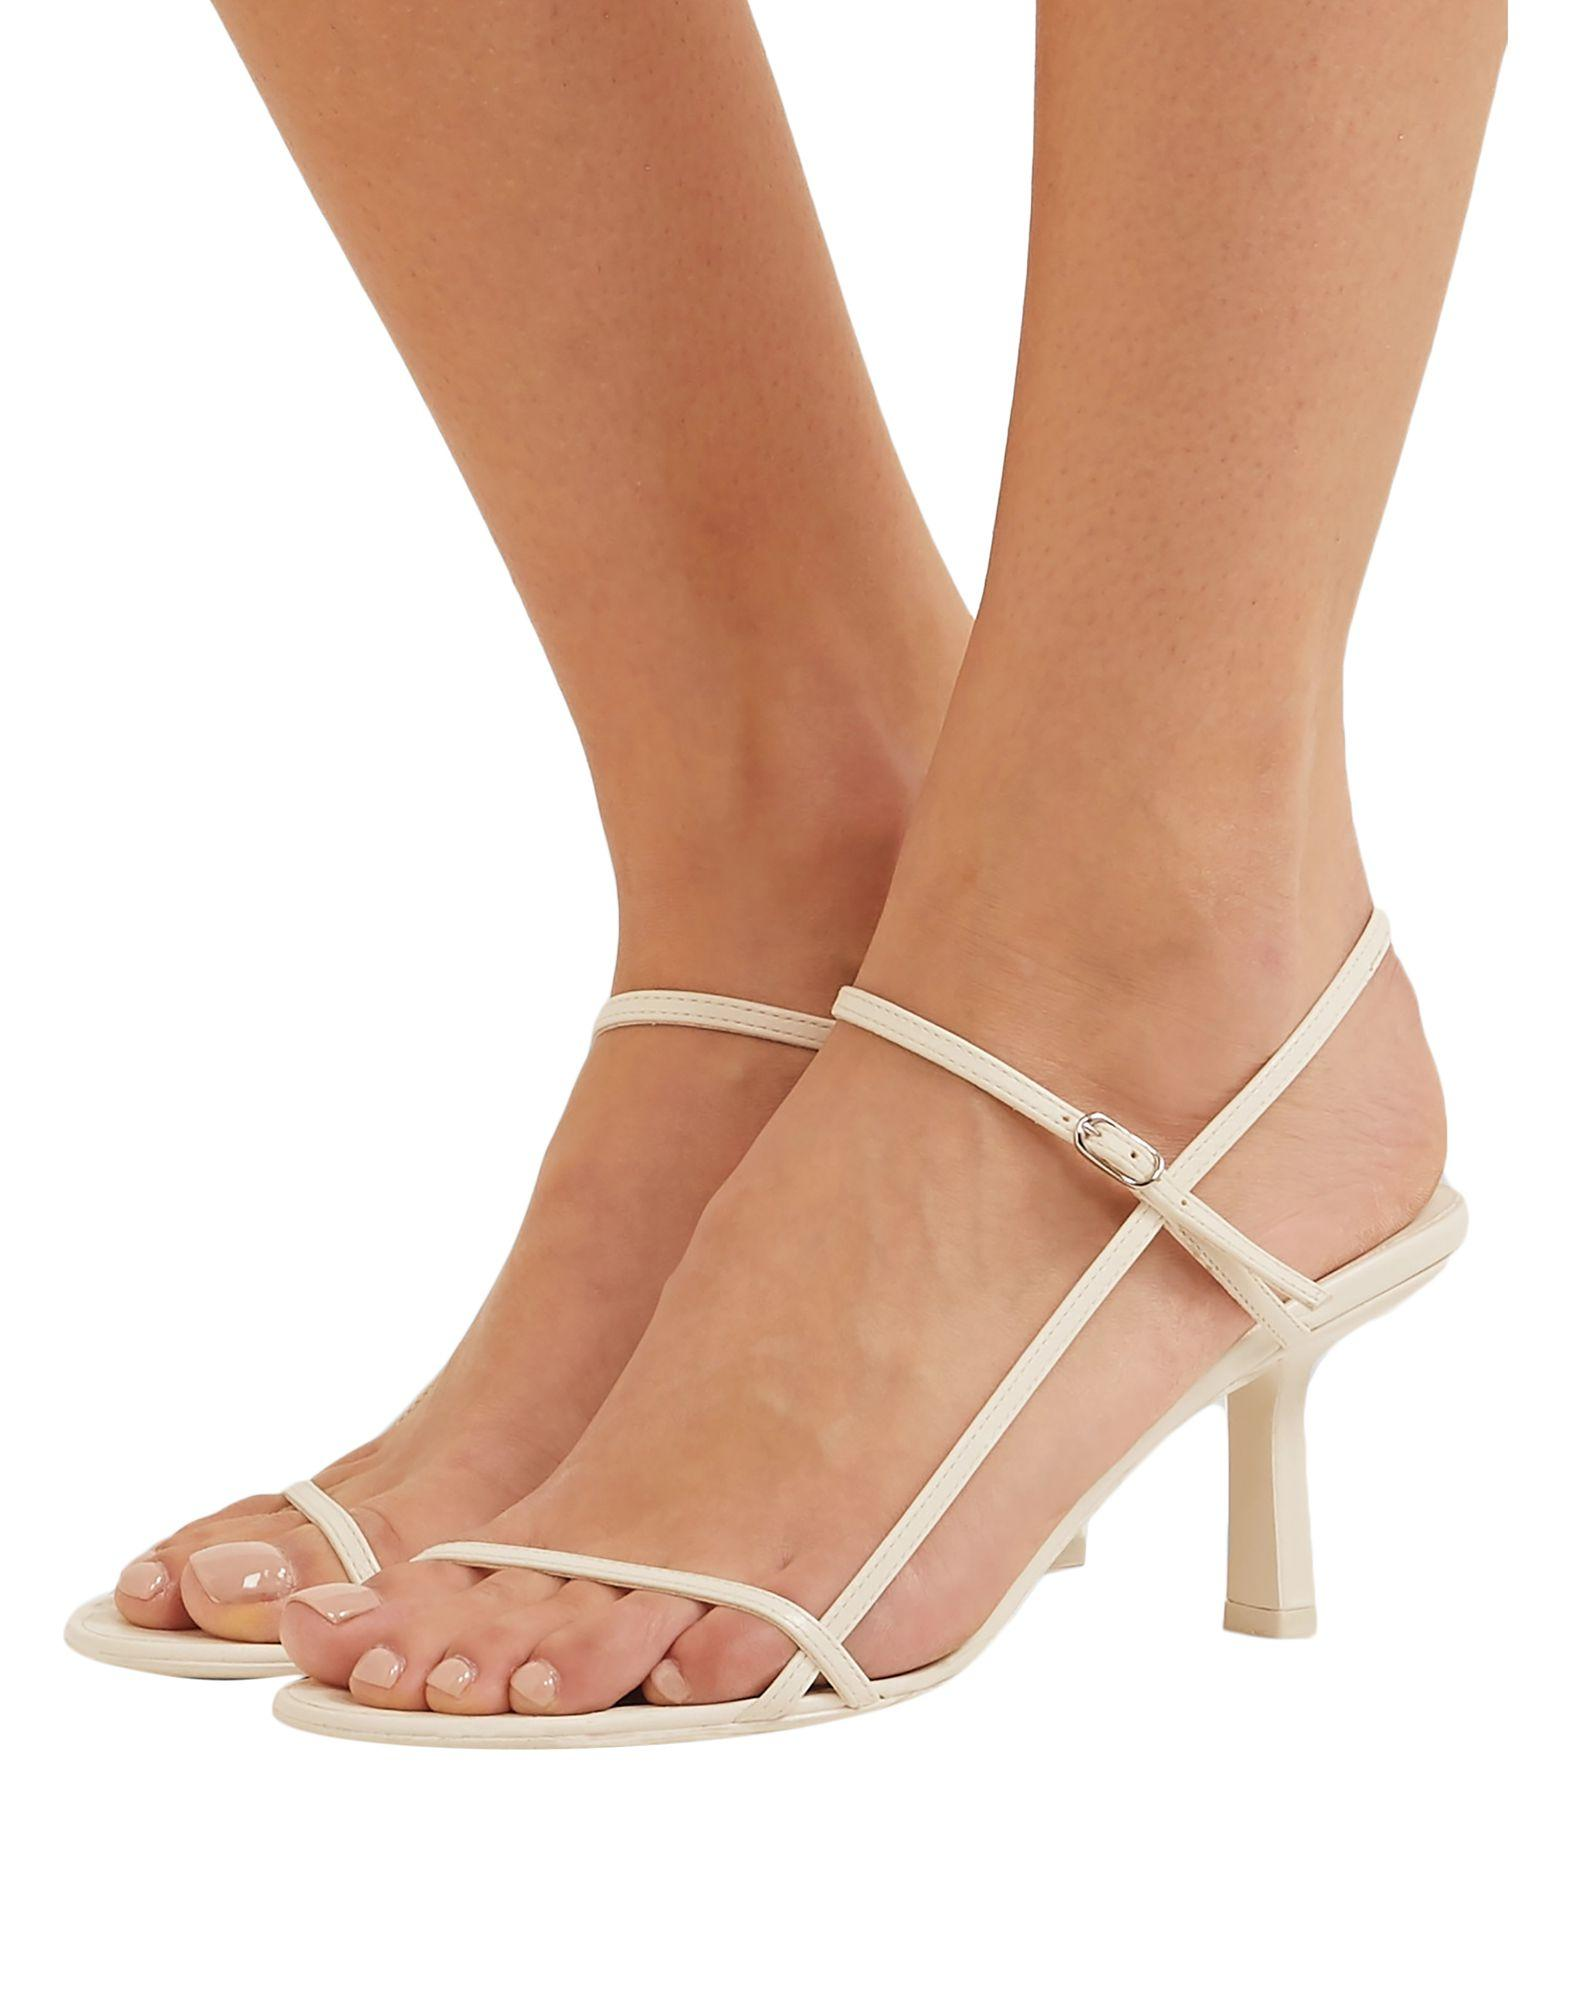 The Row Bare Leather Sandals in White